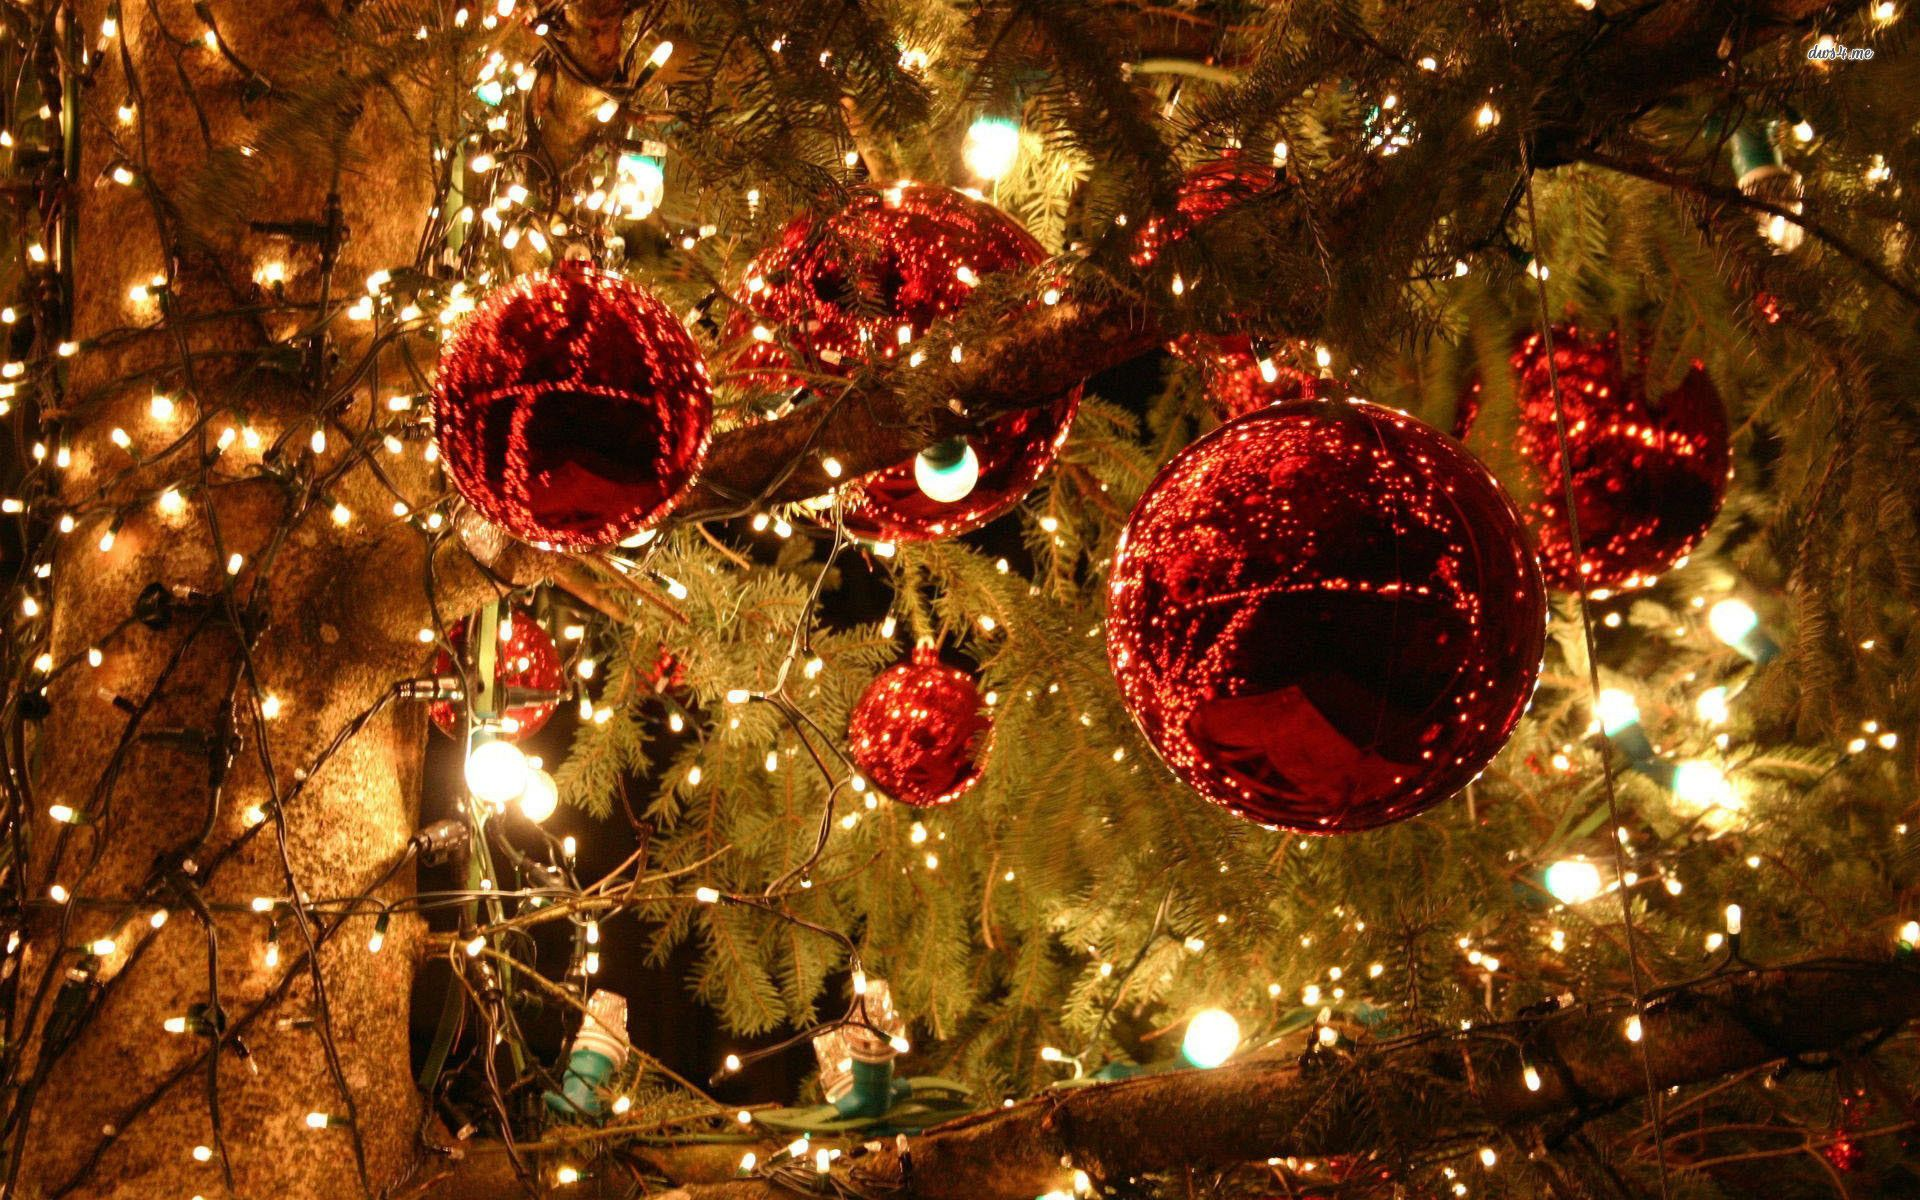 68 Christmas Pc Wallpapers On Wallpaperplay Merry Christmas Wallpaper Christmas Wallpaper Backgrounds Christmas Lights Background